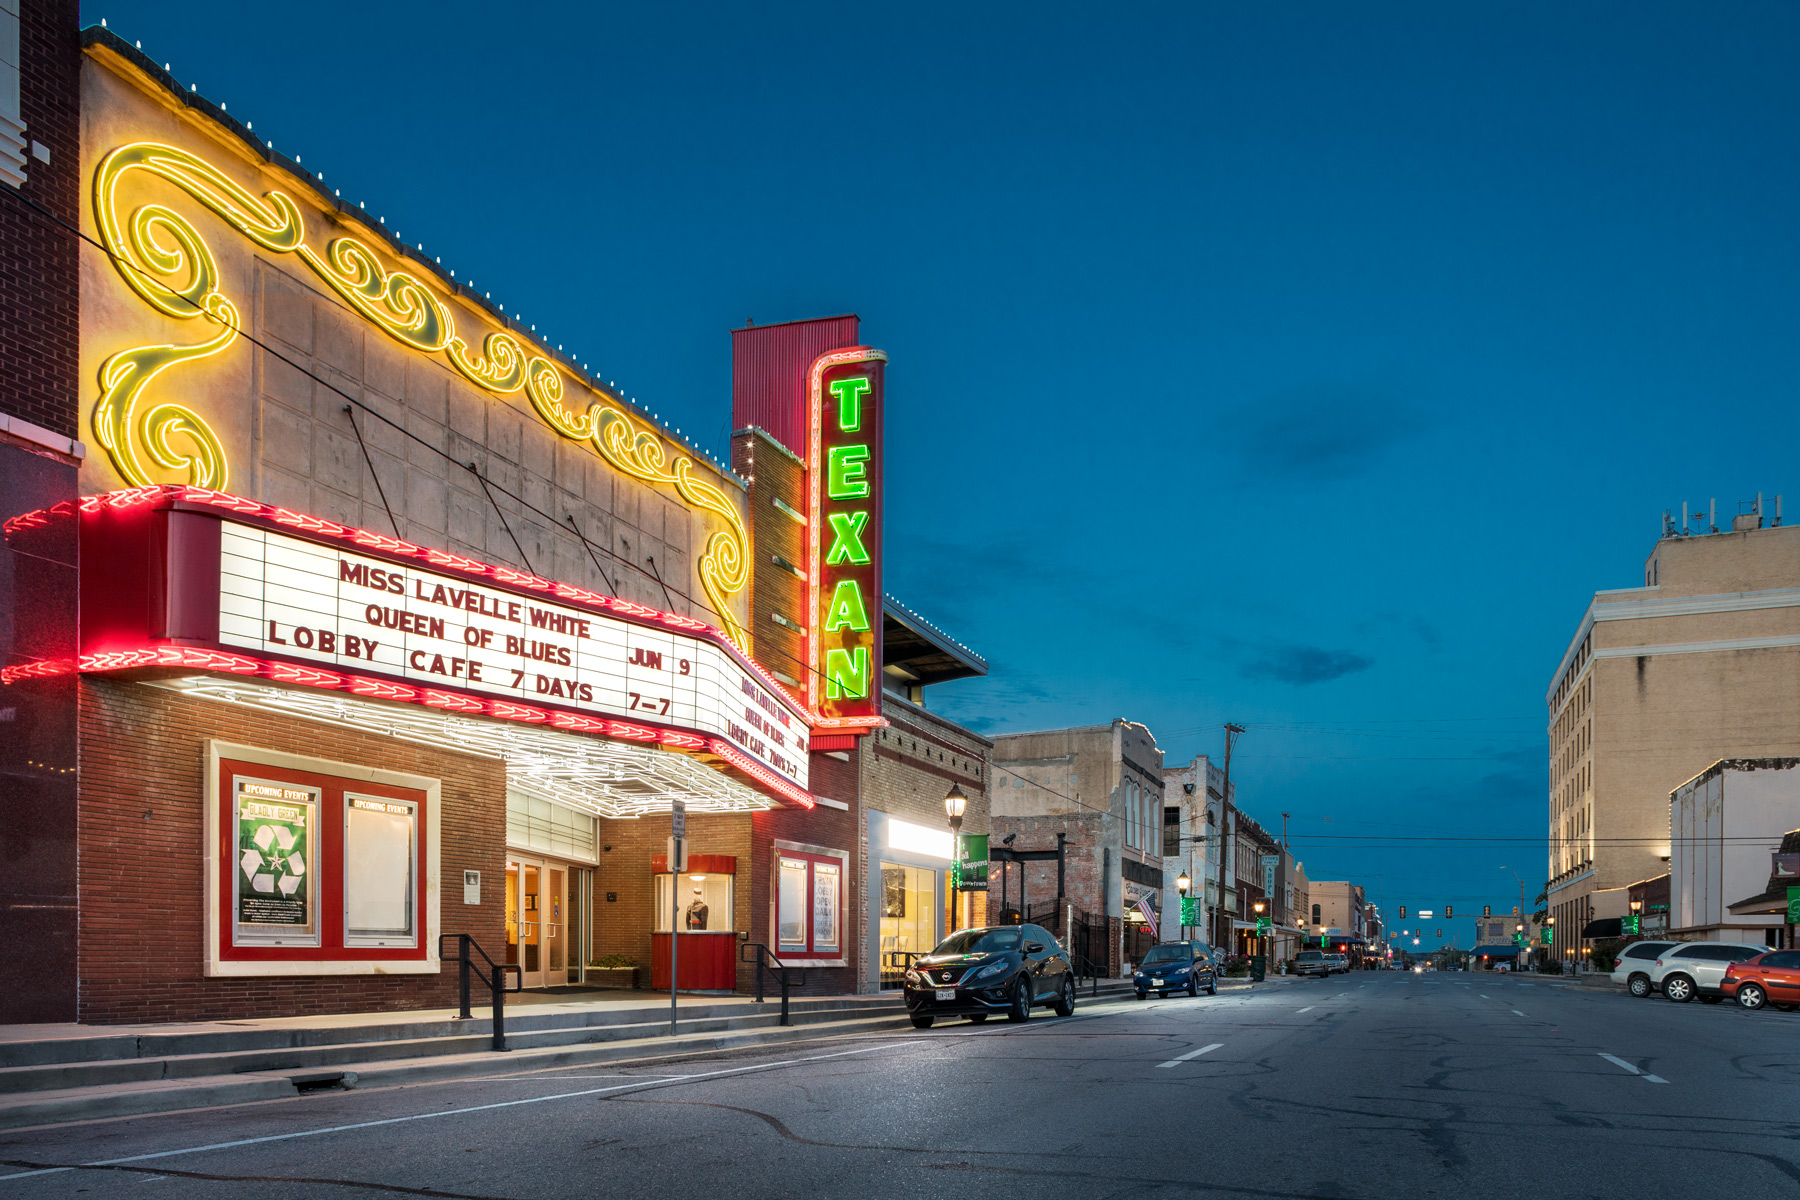 TEXAN THEATER, GREENVILLE, TX